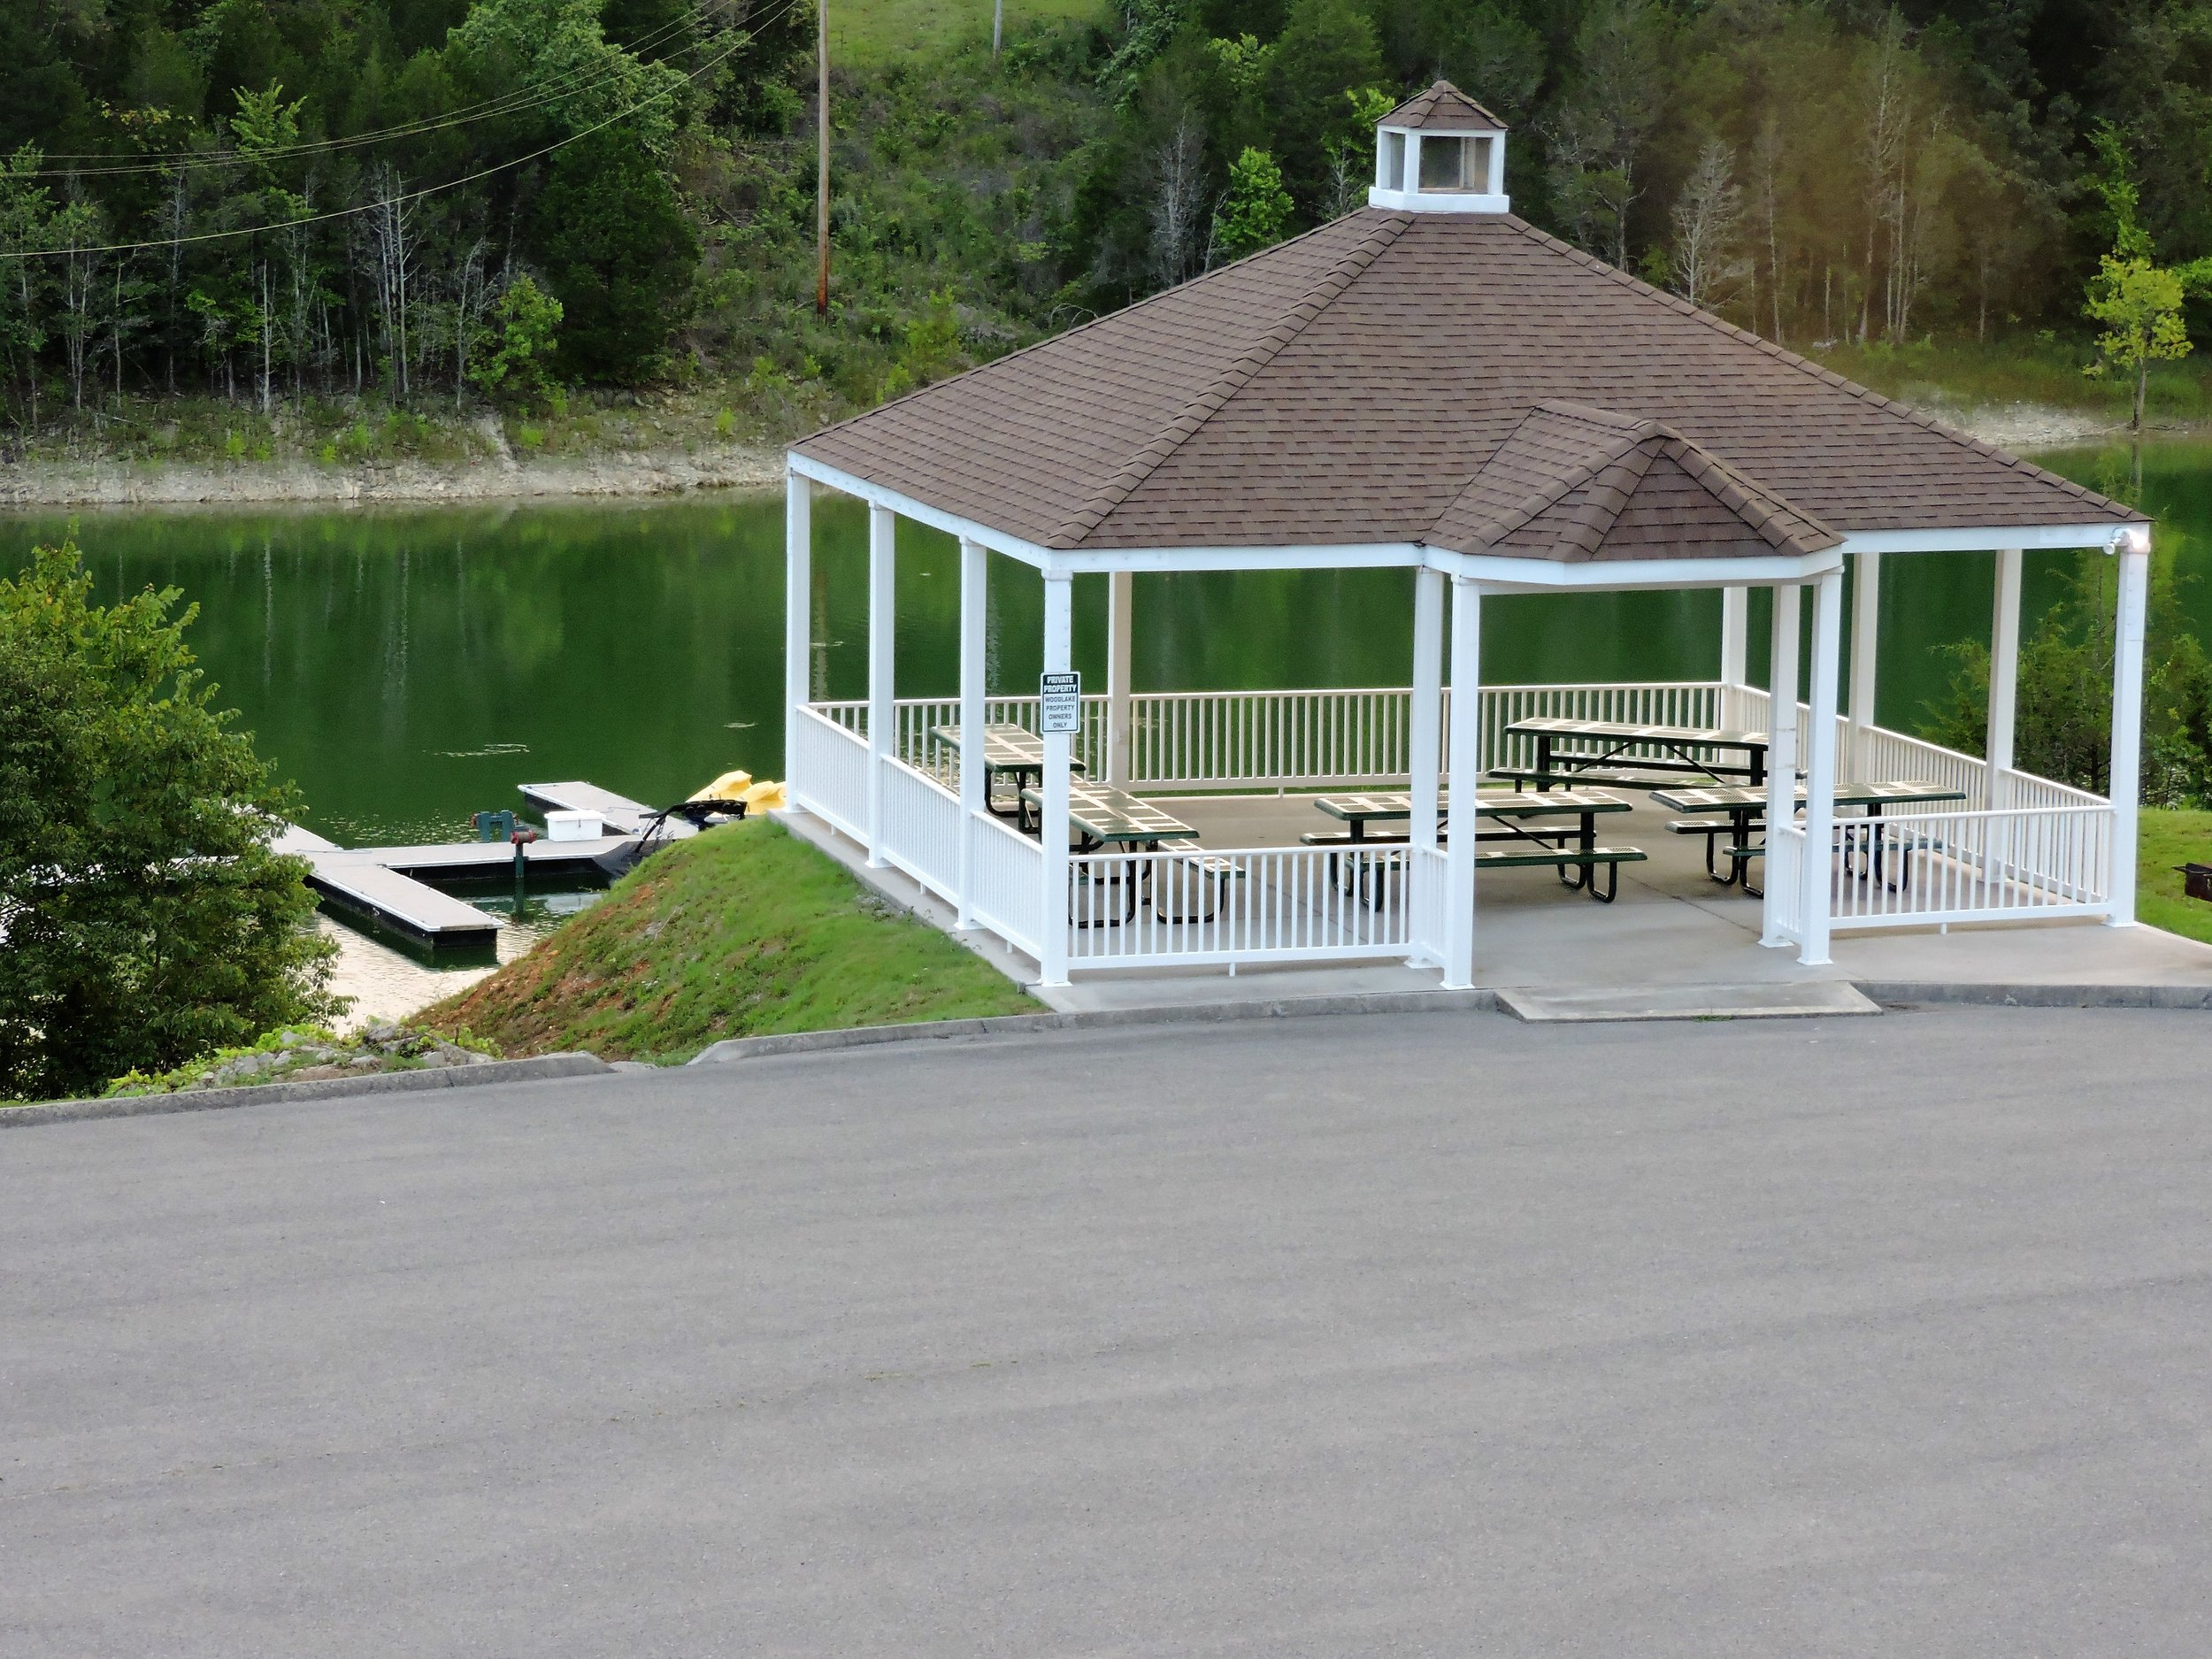 Tennessee_Golf_Woodlake_Norris_Lake_Pavilion.jpg